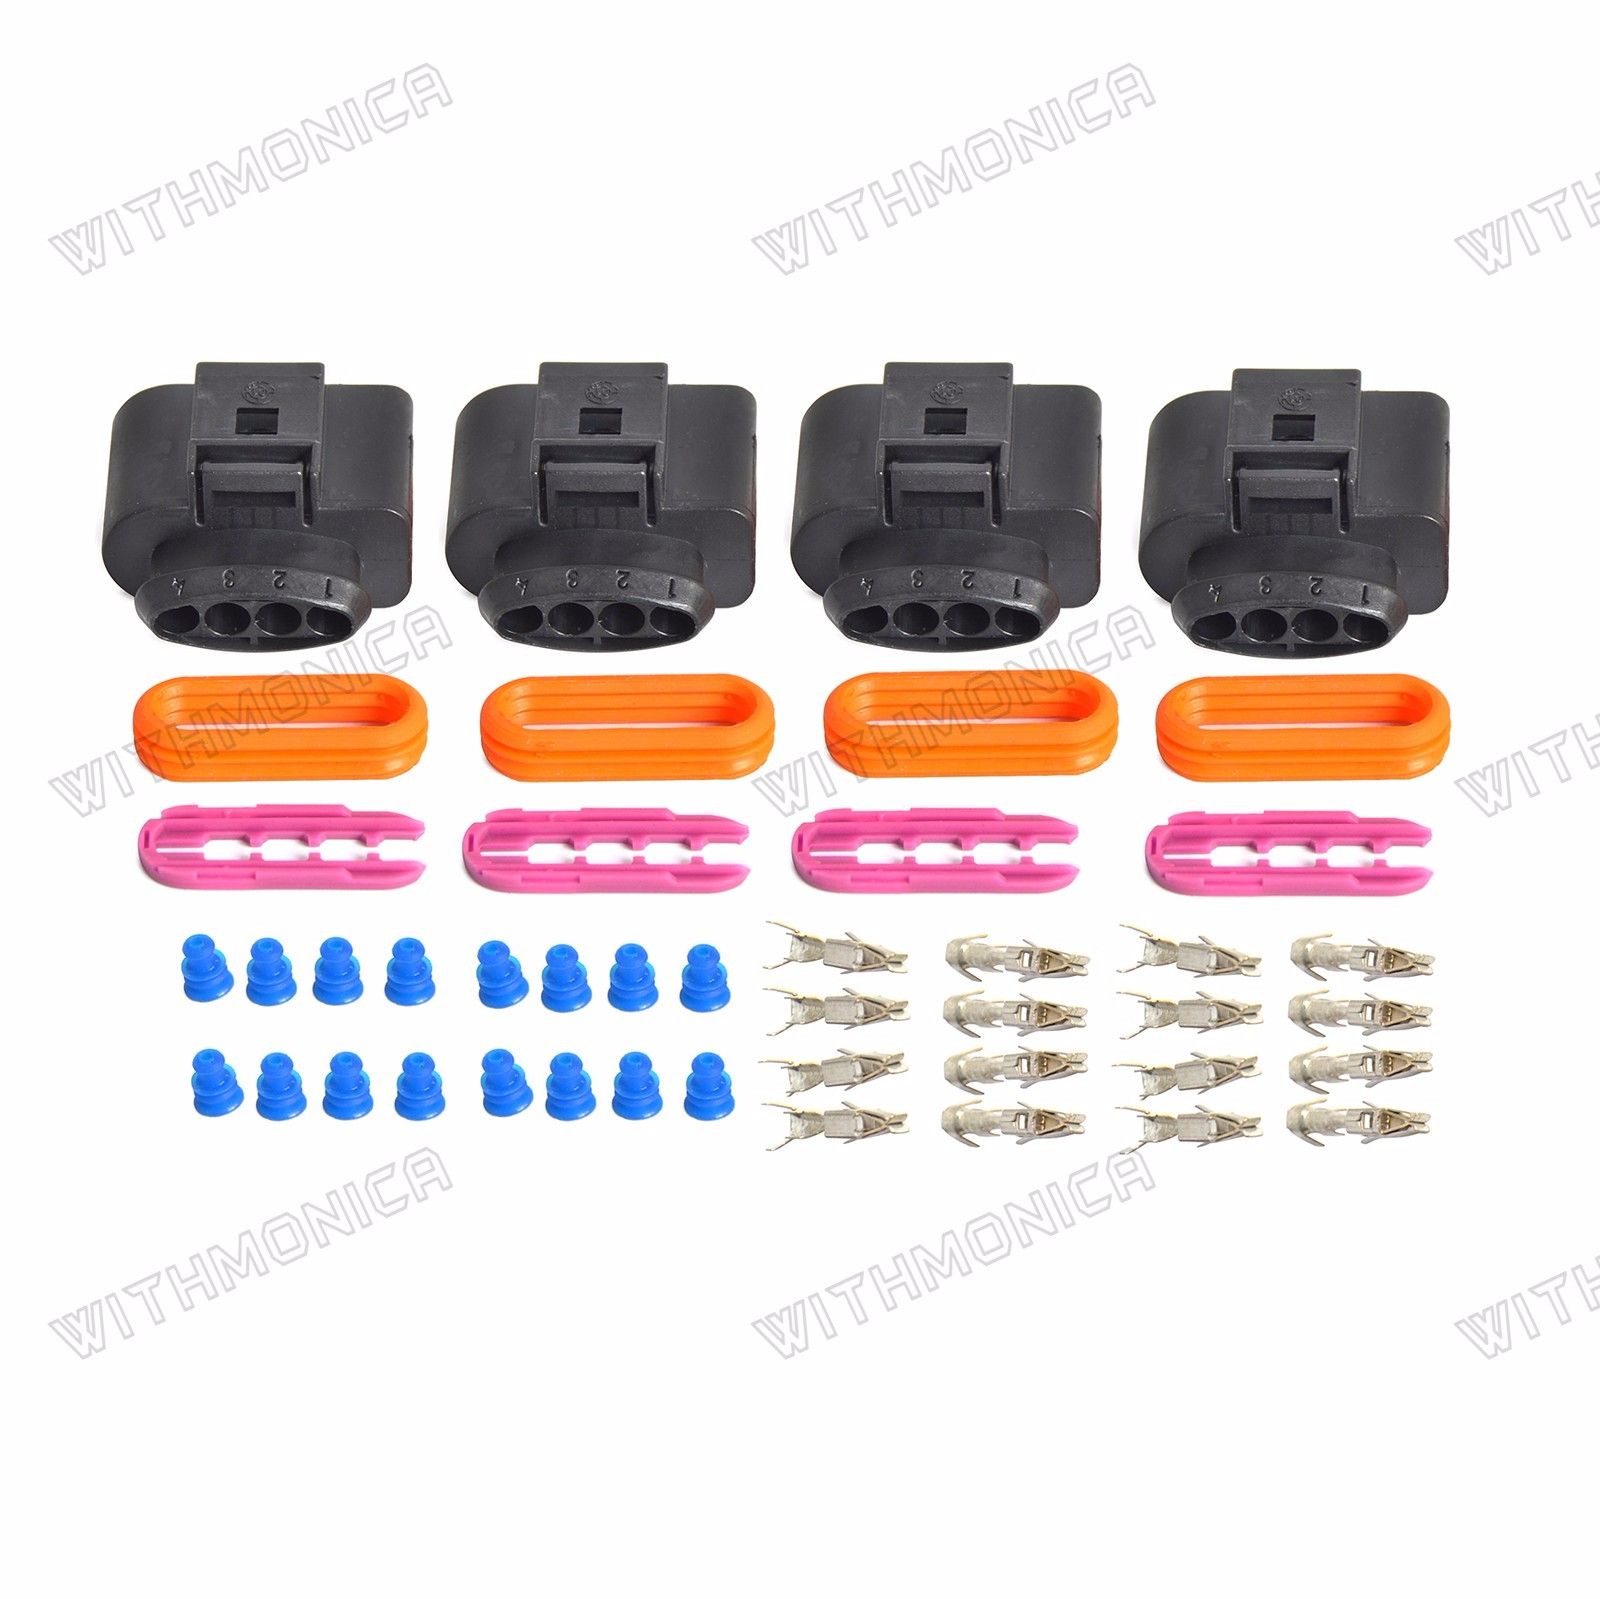 ignition coil wiring harness connector repair kit for audi a4 a6 vw rh ebay com Automotive Wiring Kit Automotive Wiring Kit